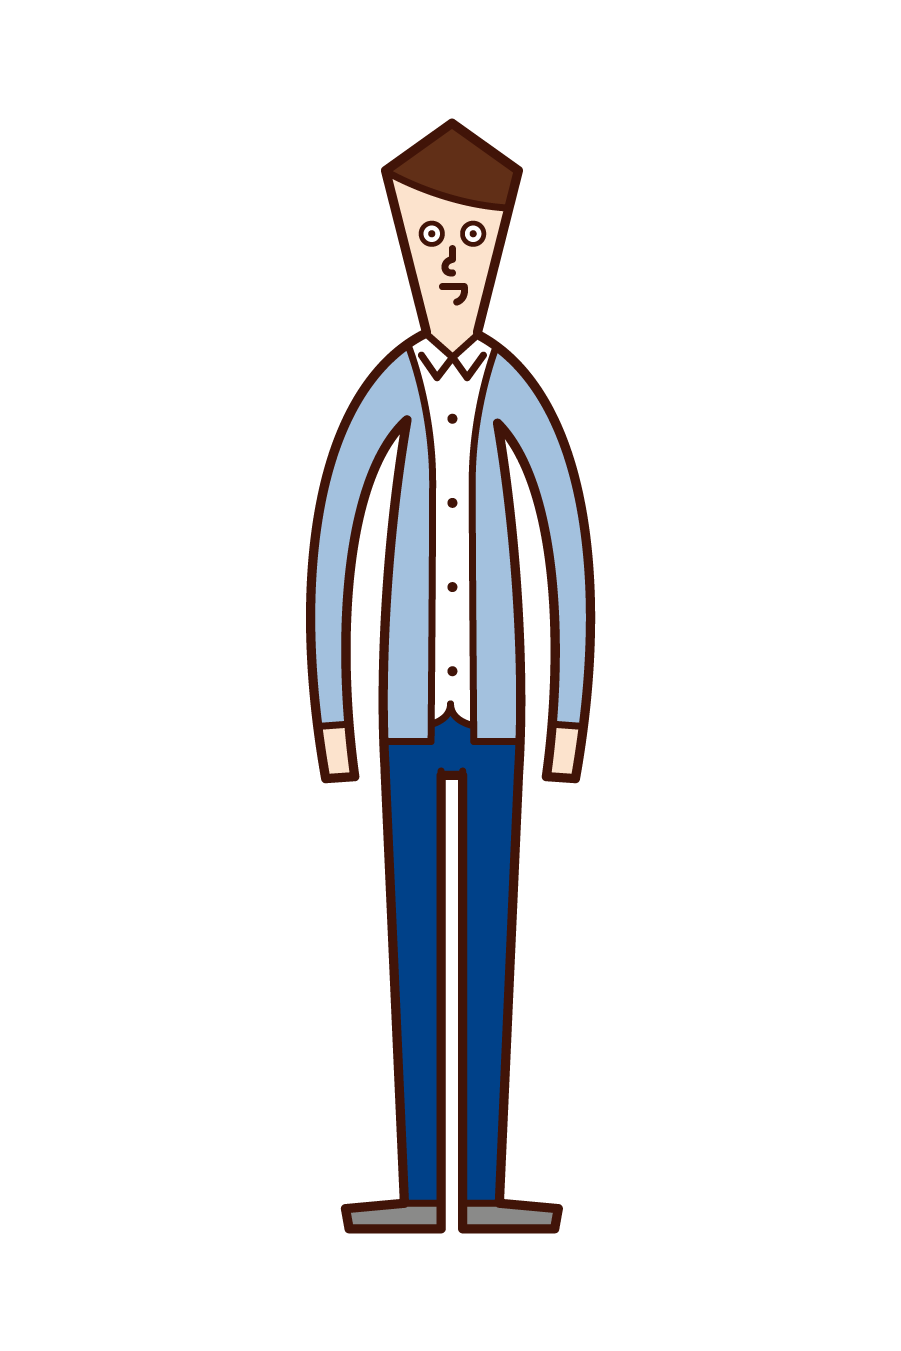 Illustration of a man wearing a cardigan